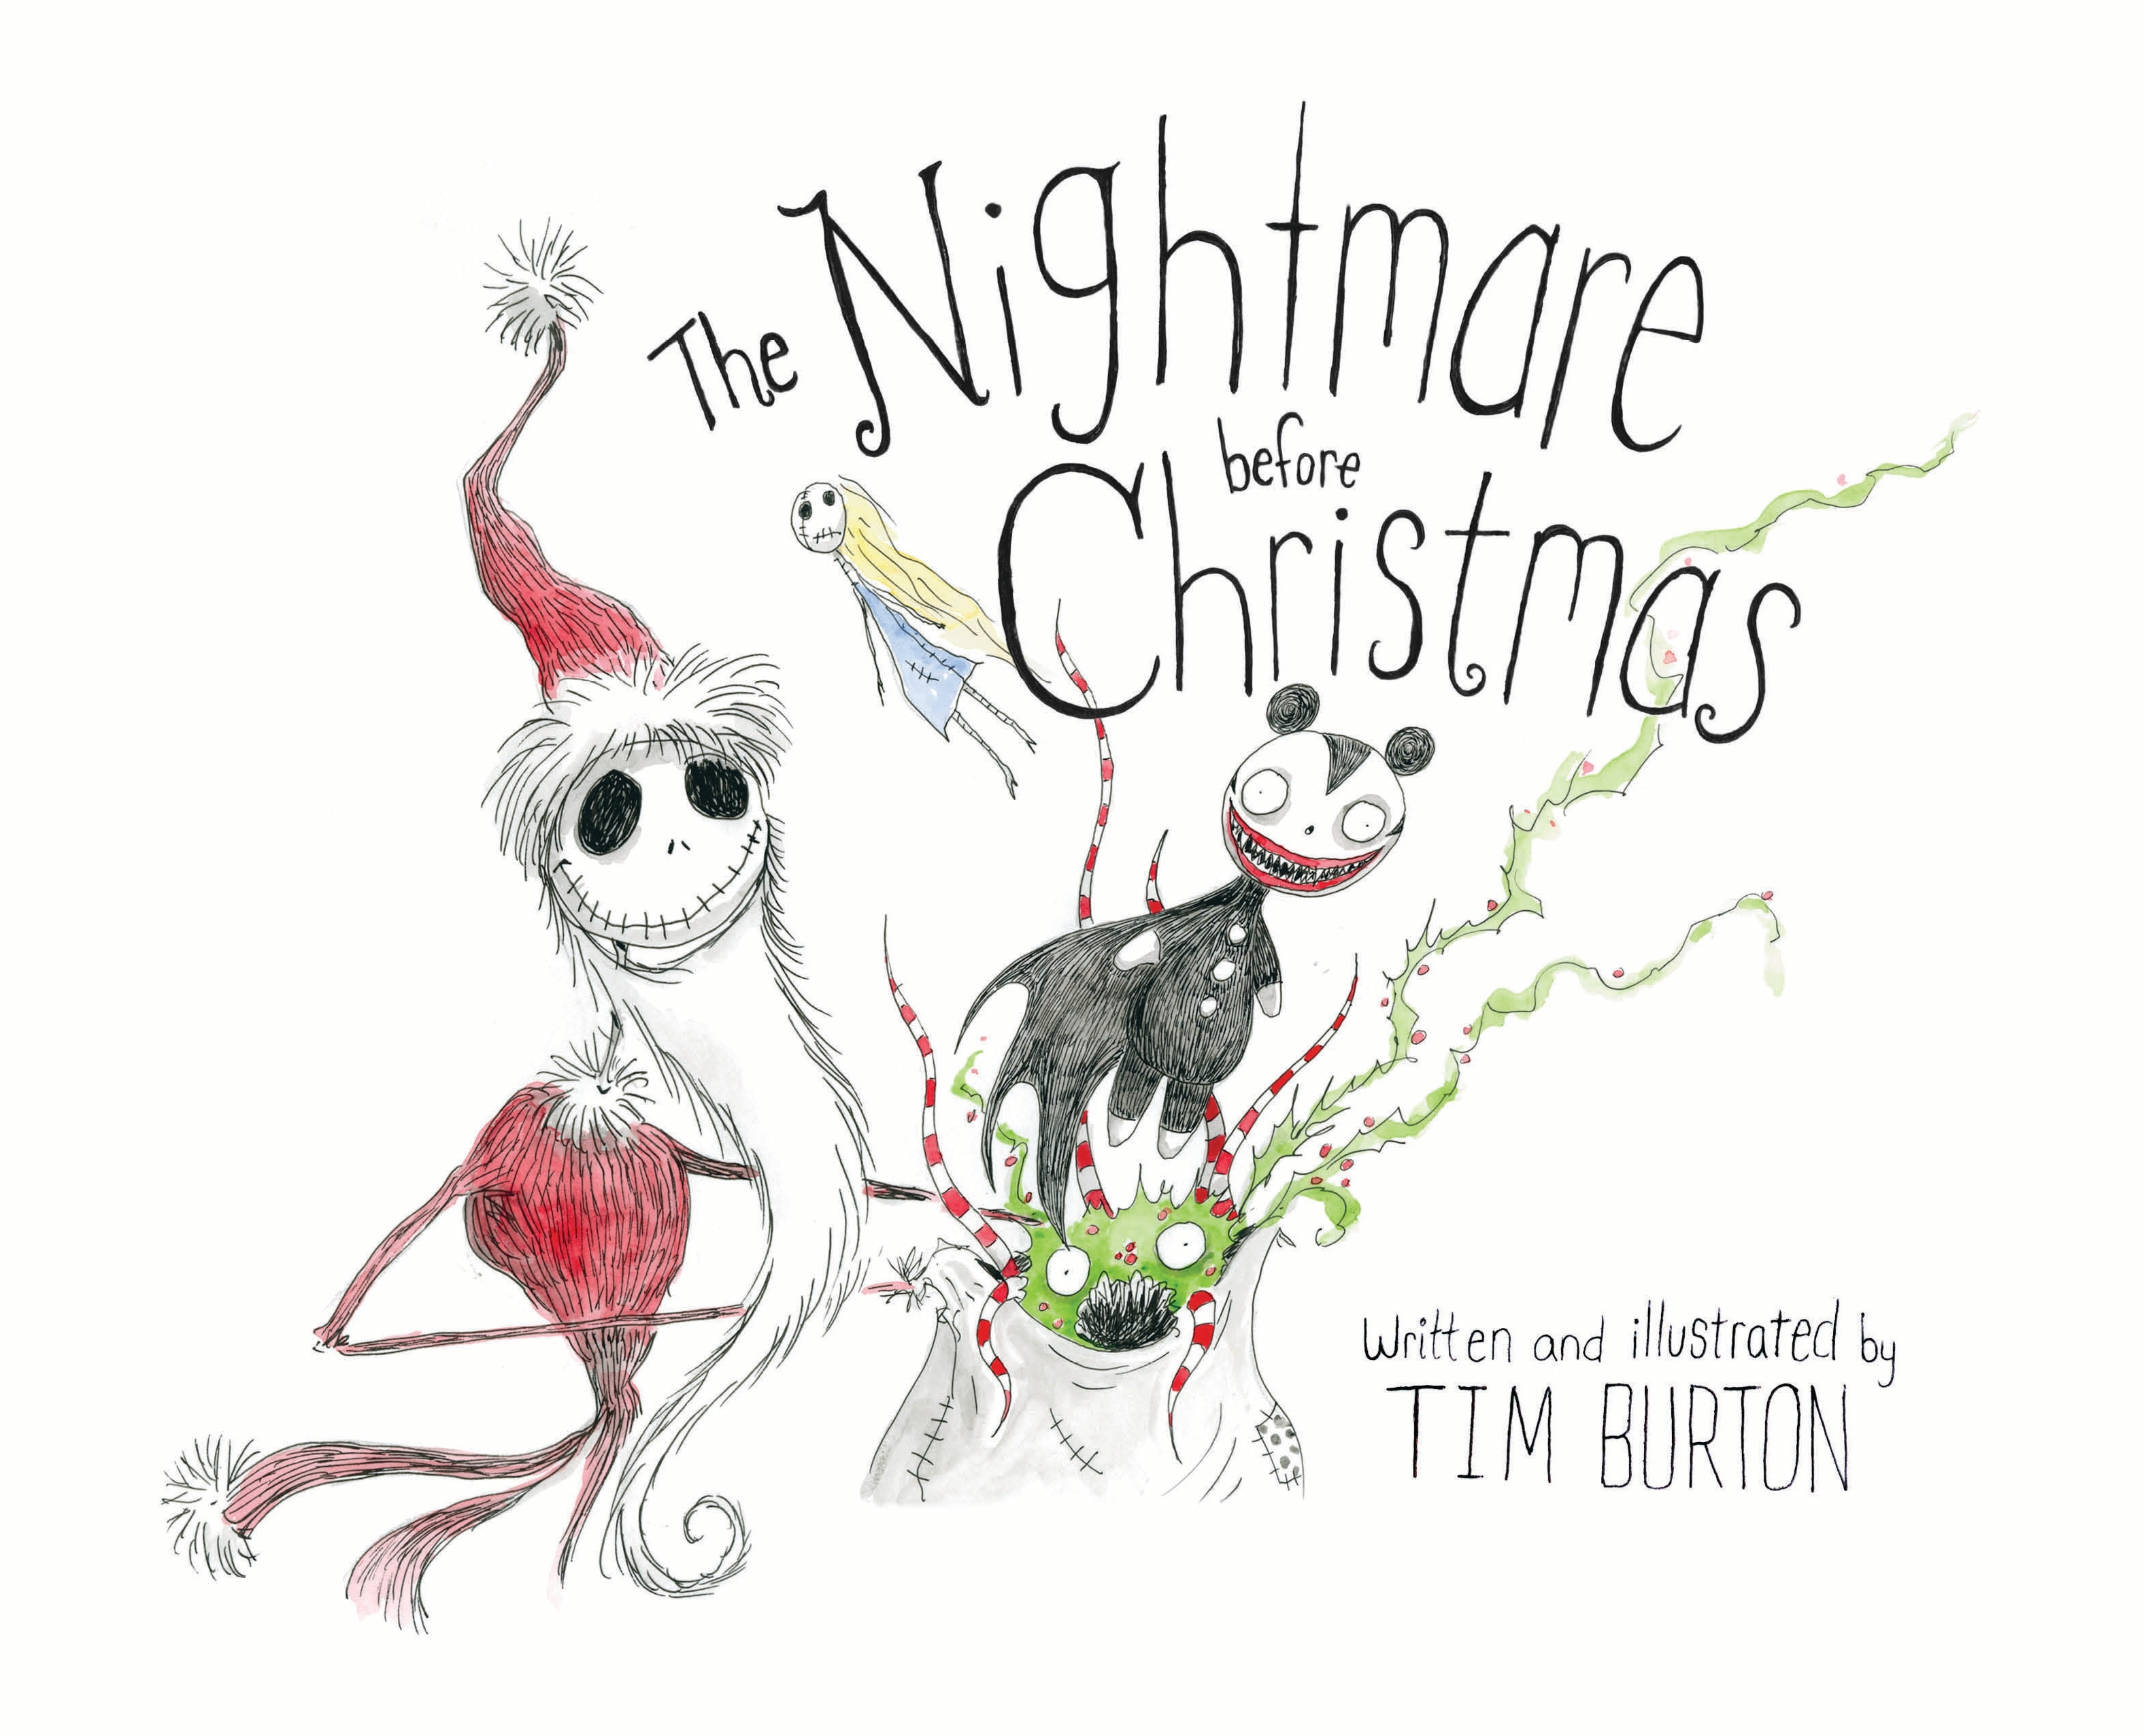 the nightmare before christmas - What Is The Nightmare Before Christmas About